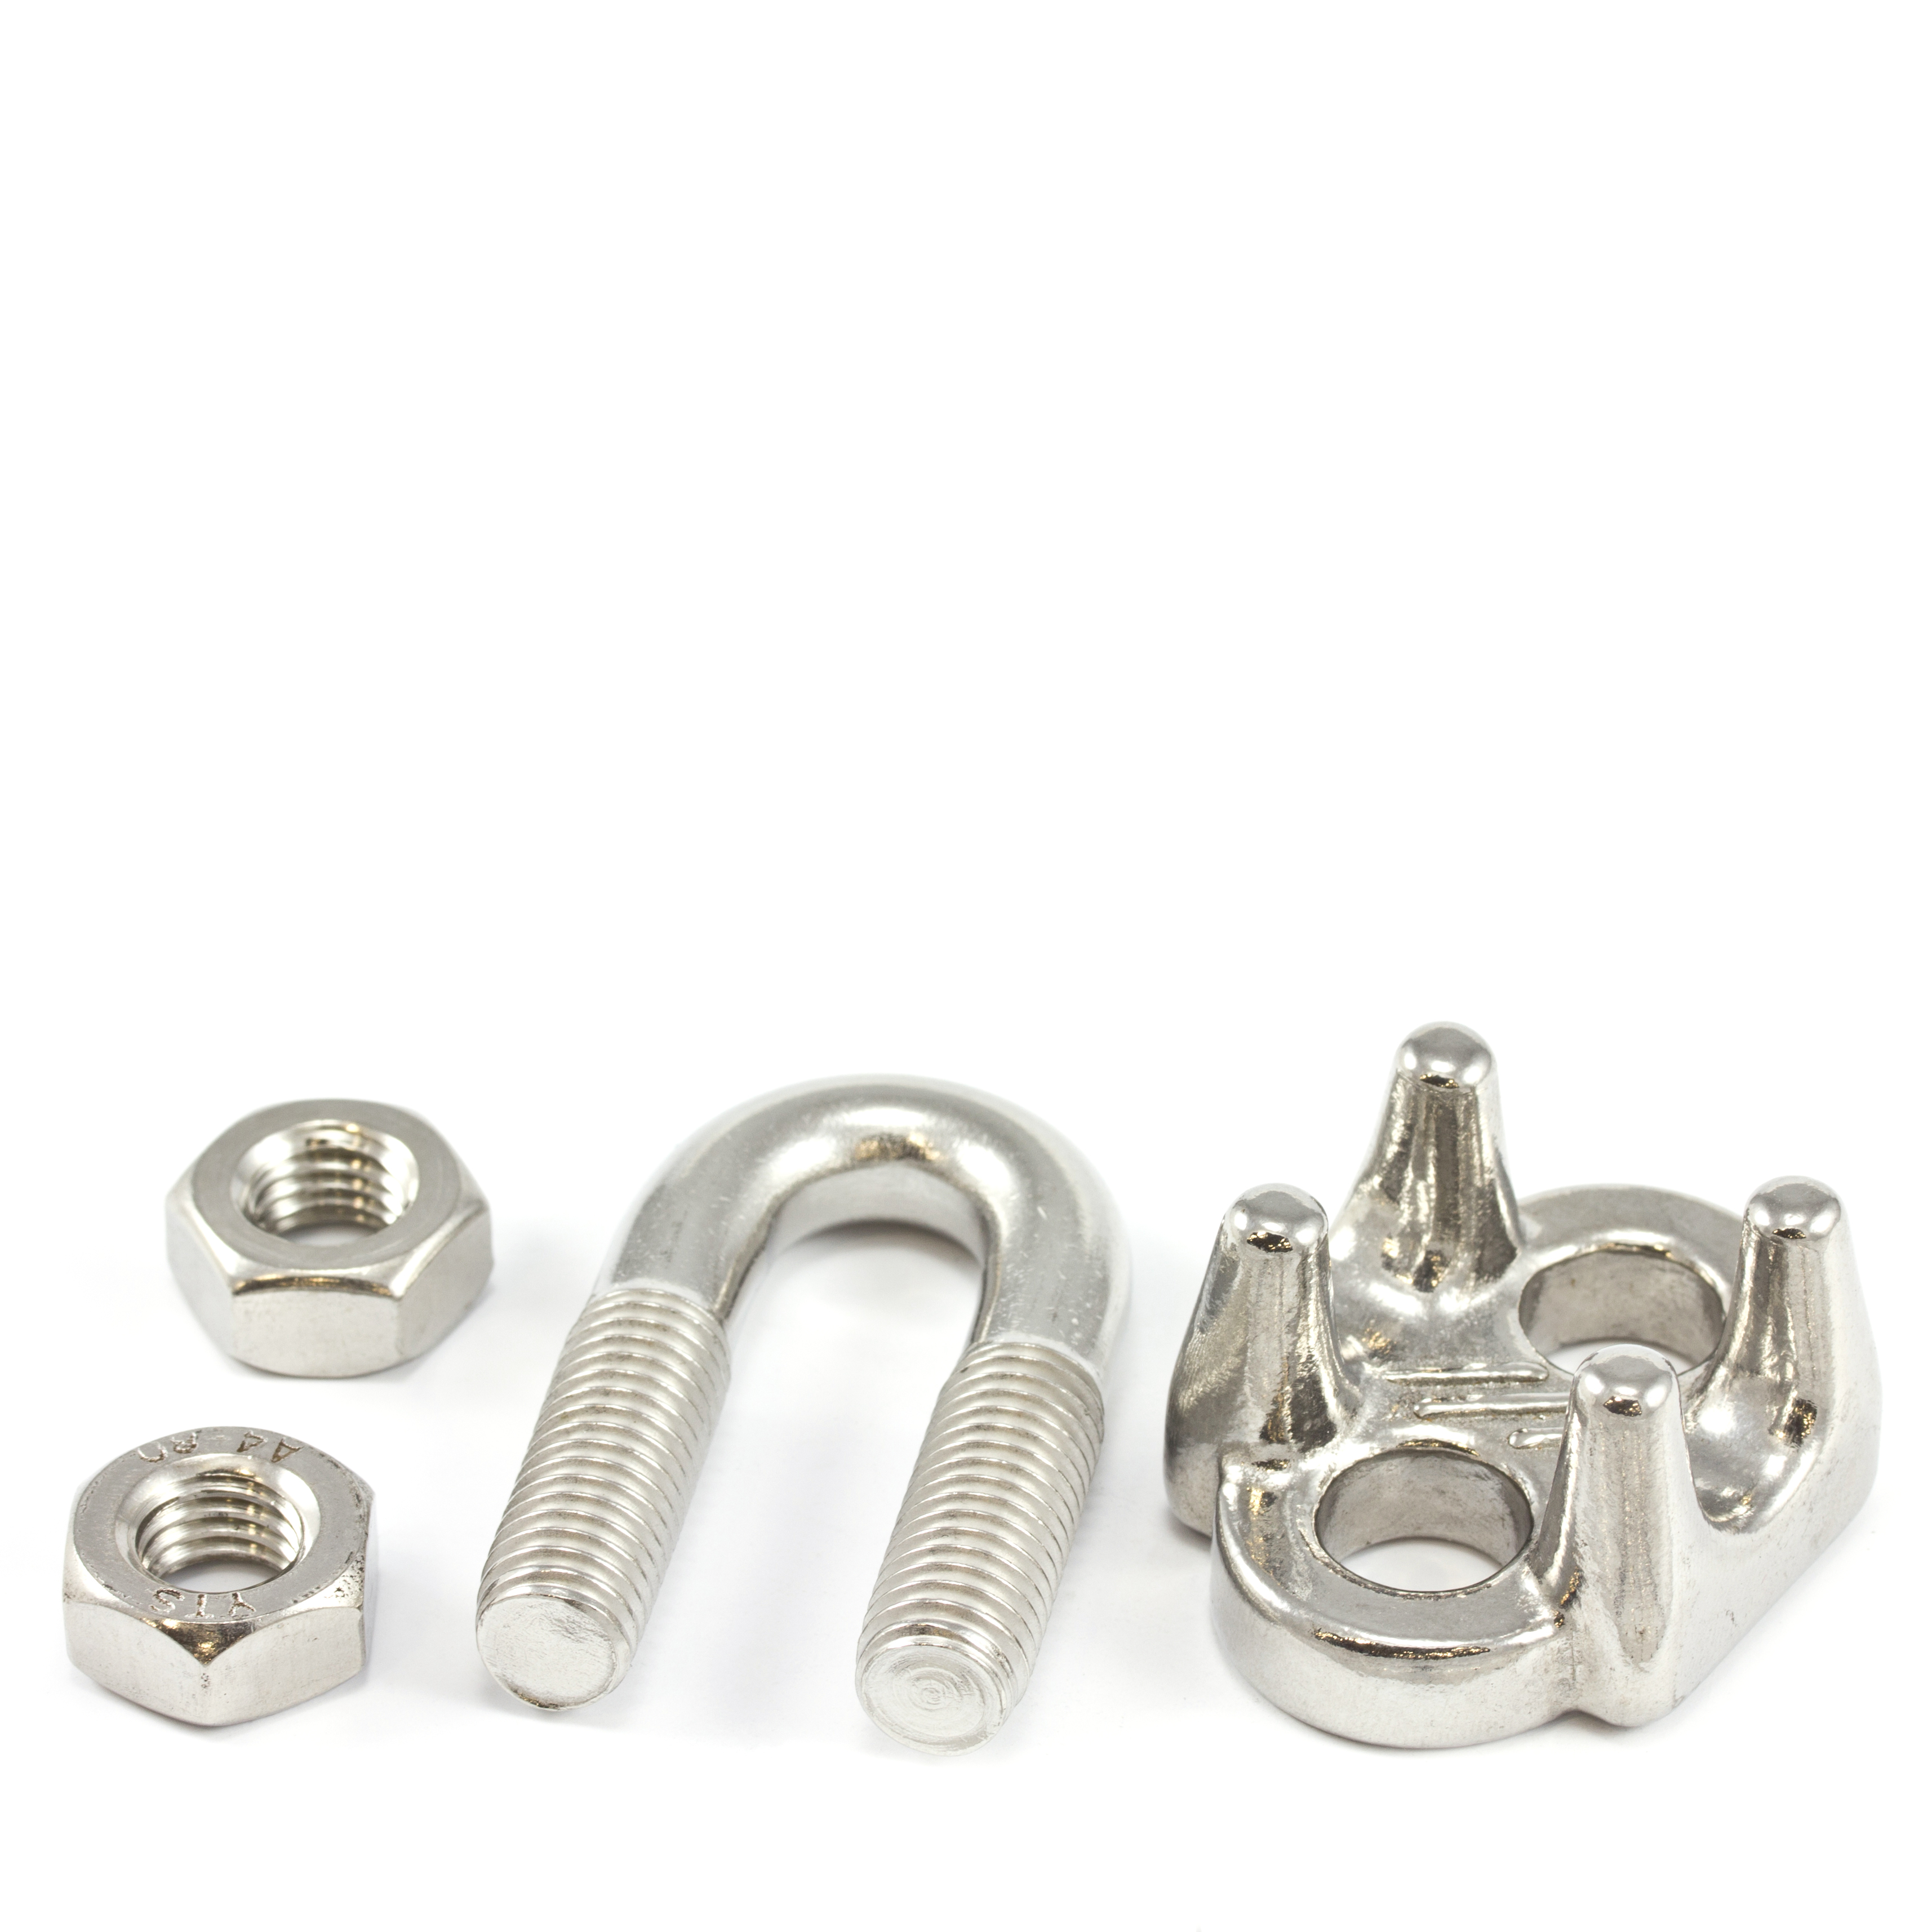 Thumbnail Polyfab Pro Rope Clamp#SS-WRC-10 10mm 5